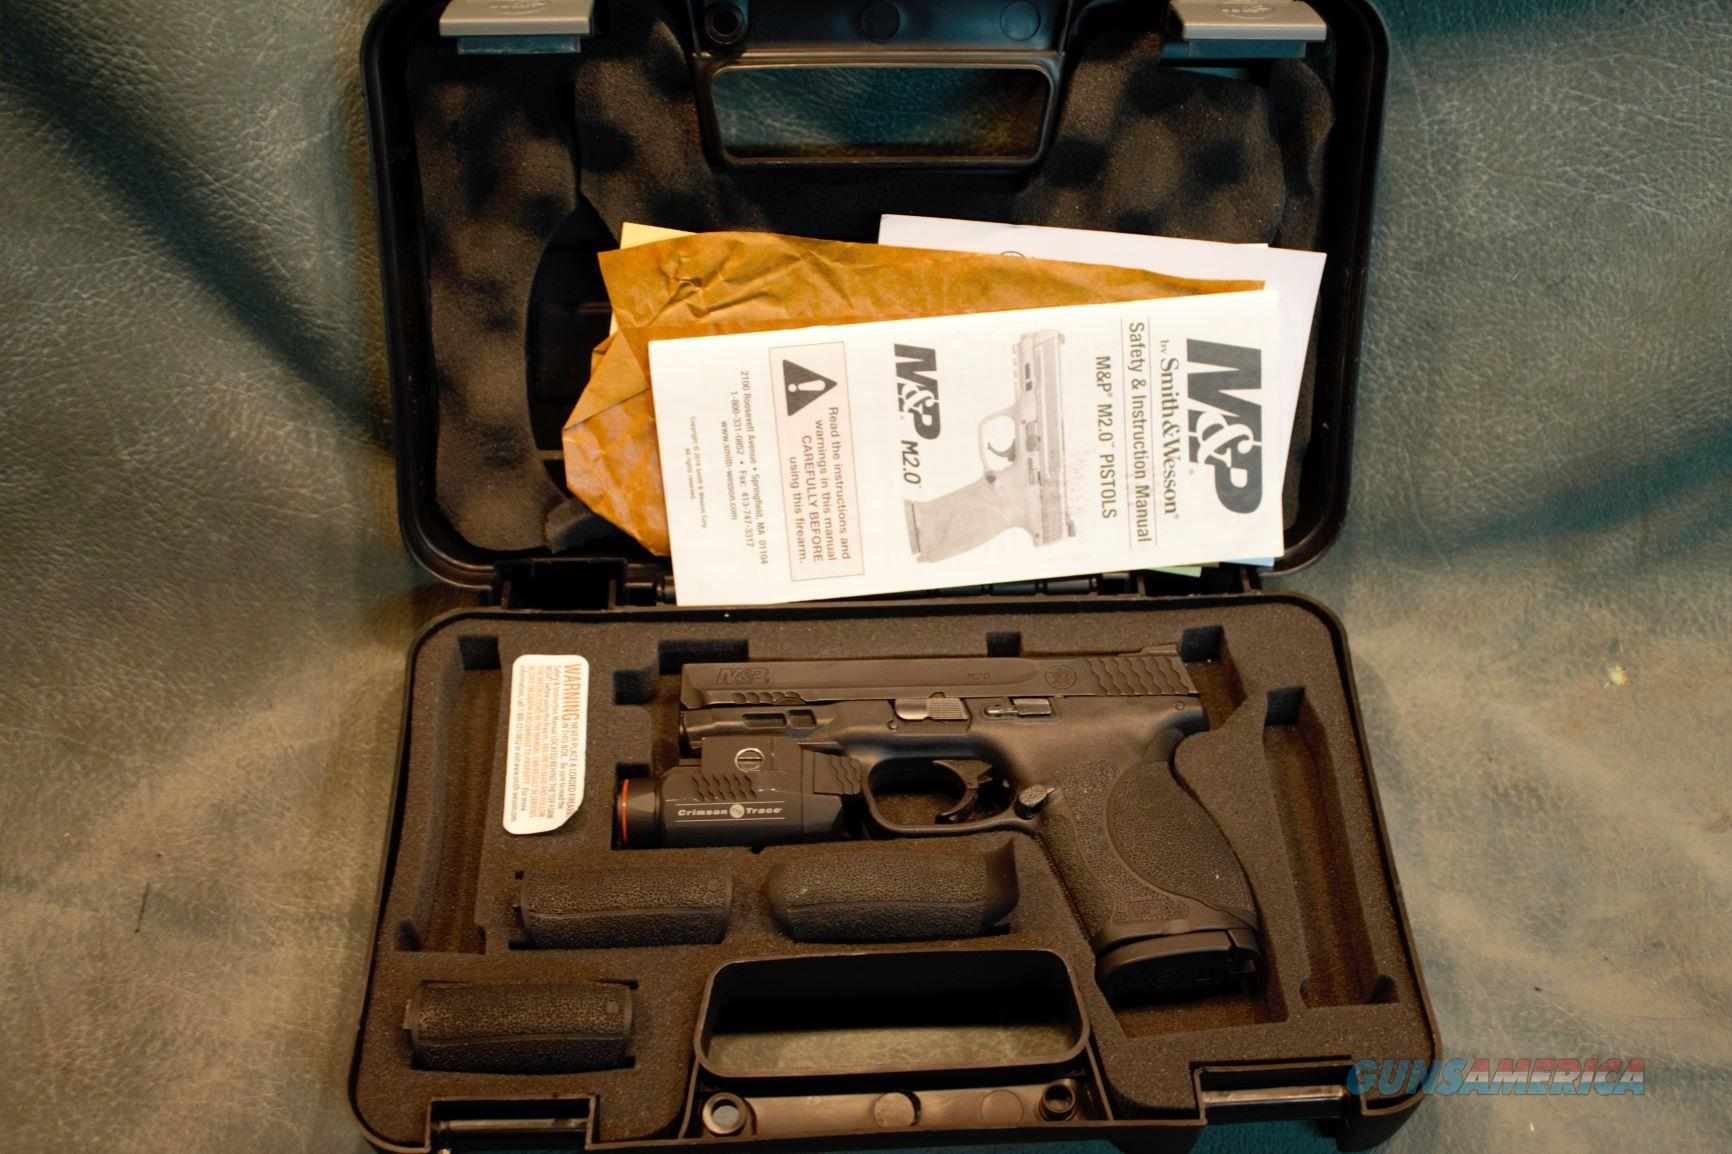 Smith & Wesson MP9 9mm  Guns > Pistols > Smith & Wesson Pistols - Autos > Polymer Frame